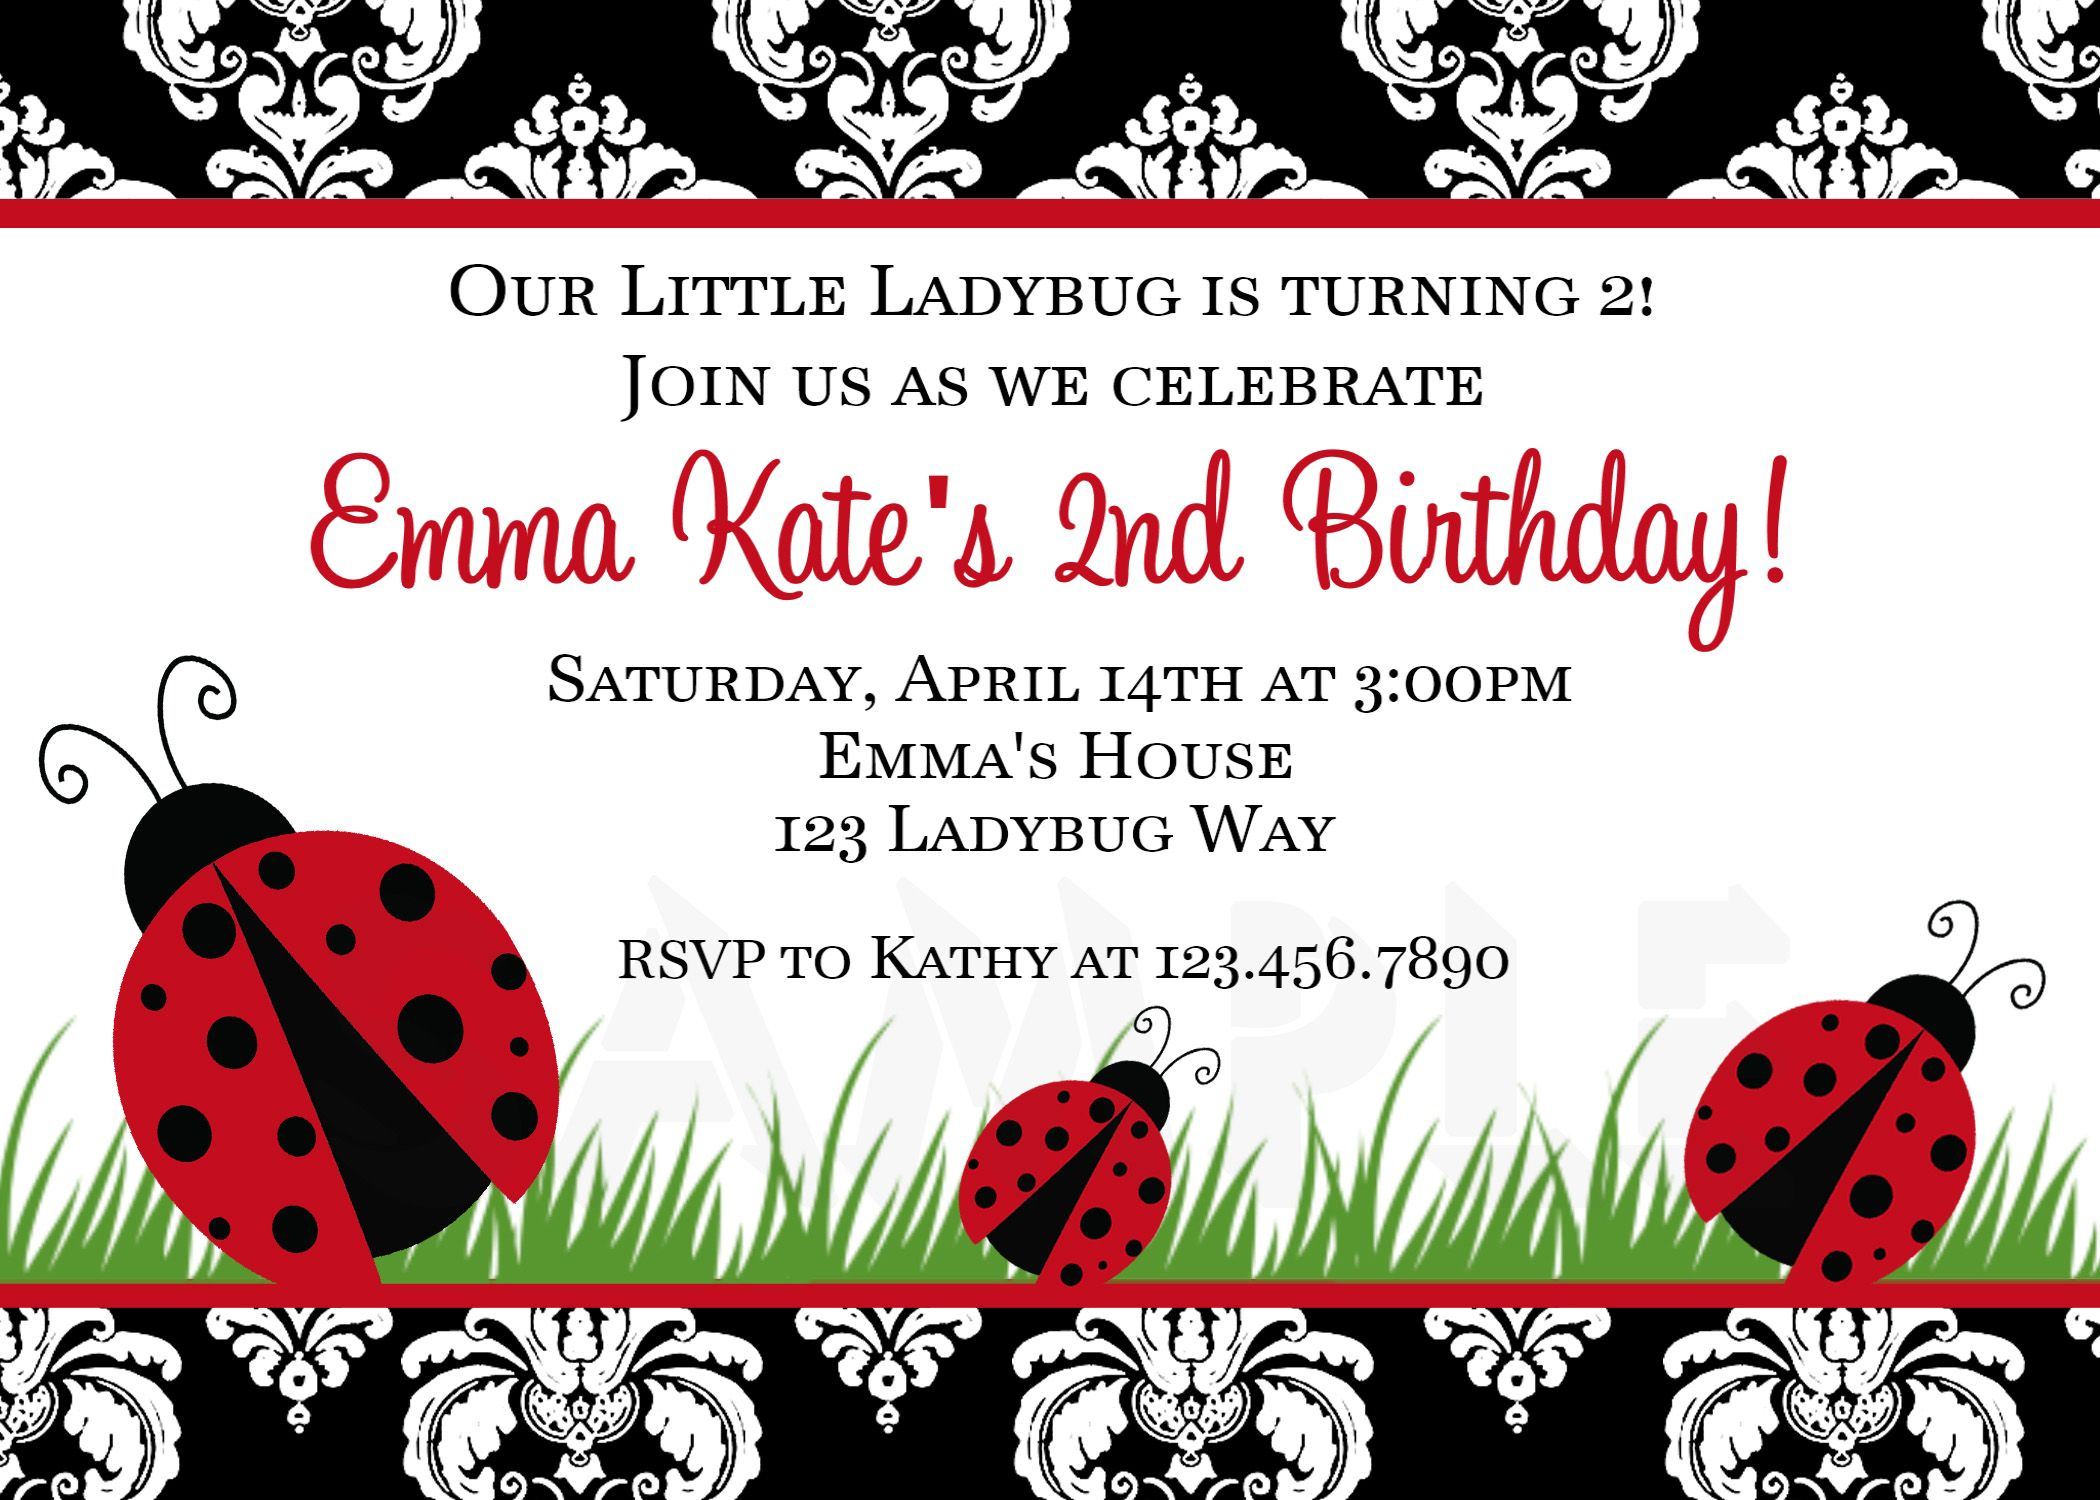 diy+ladybug+invitations | Free Ladybug Baby Shower Invitations ...